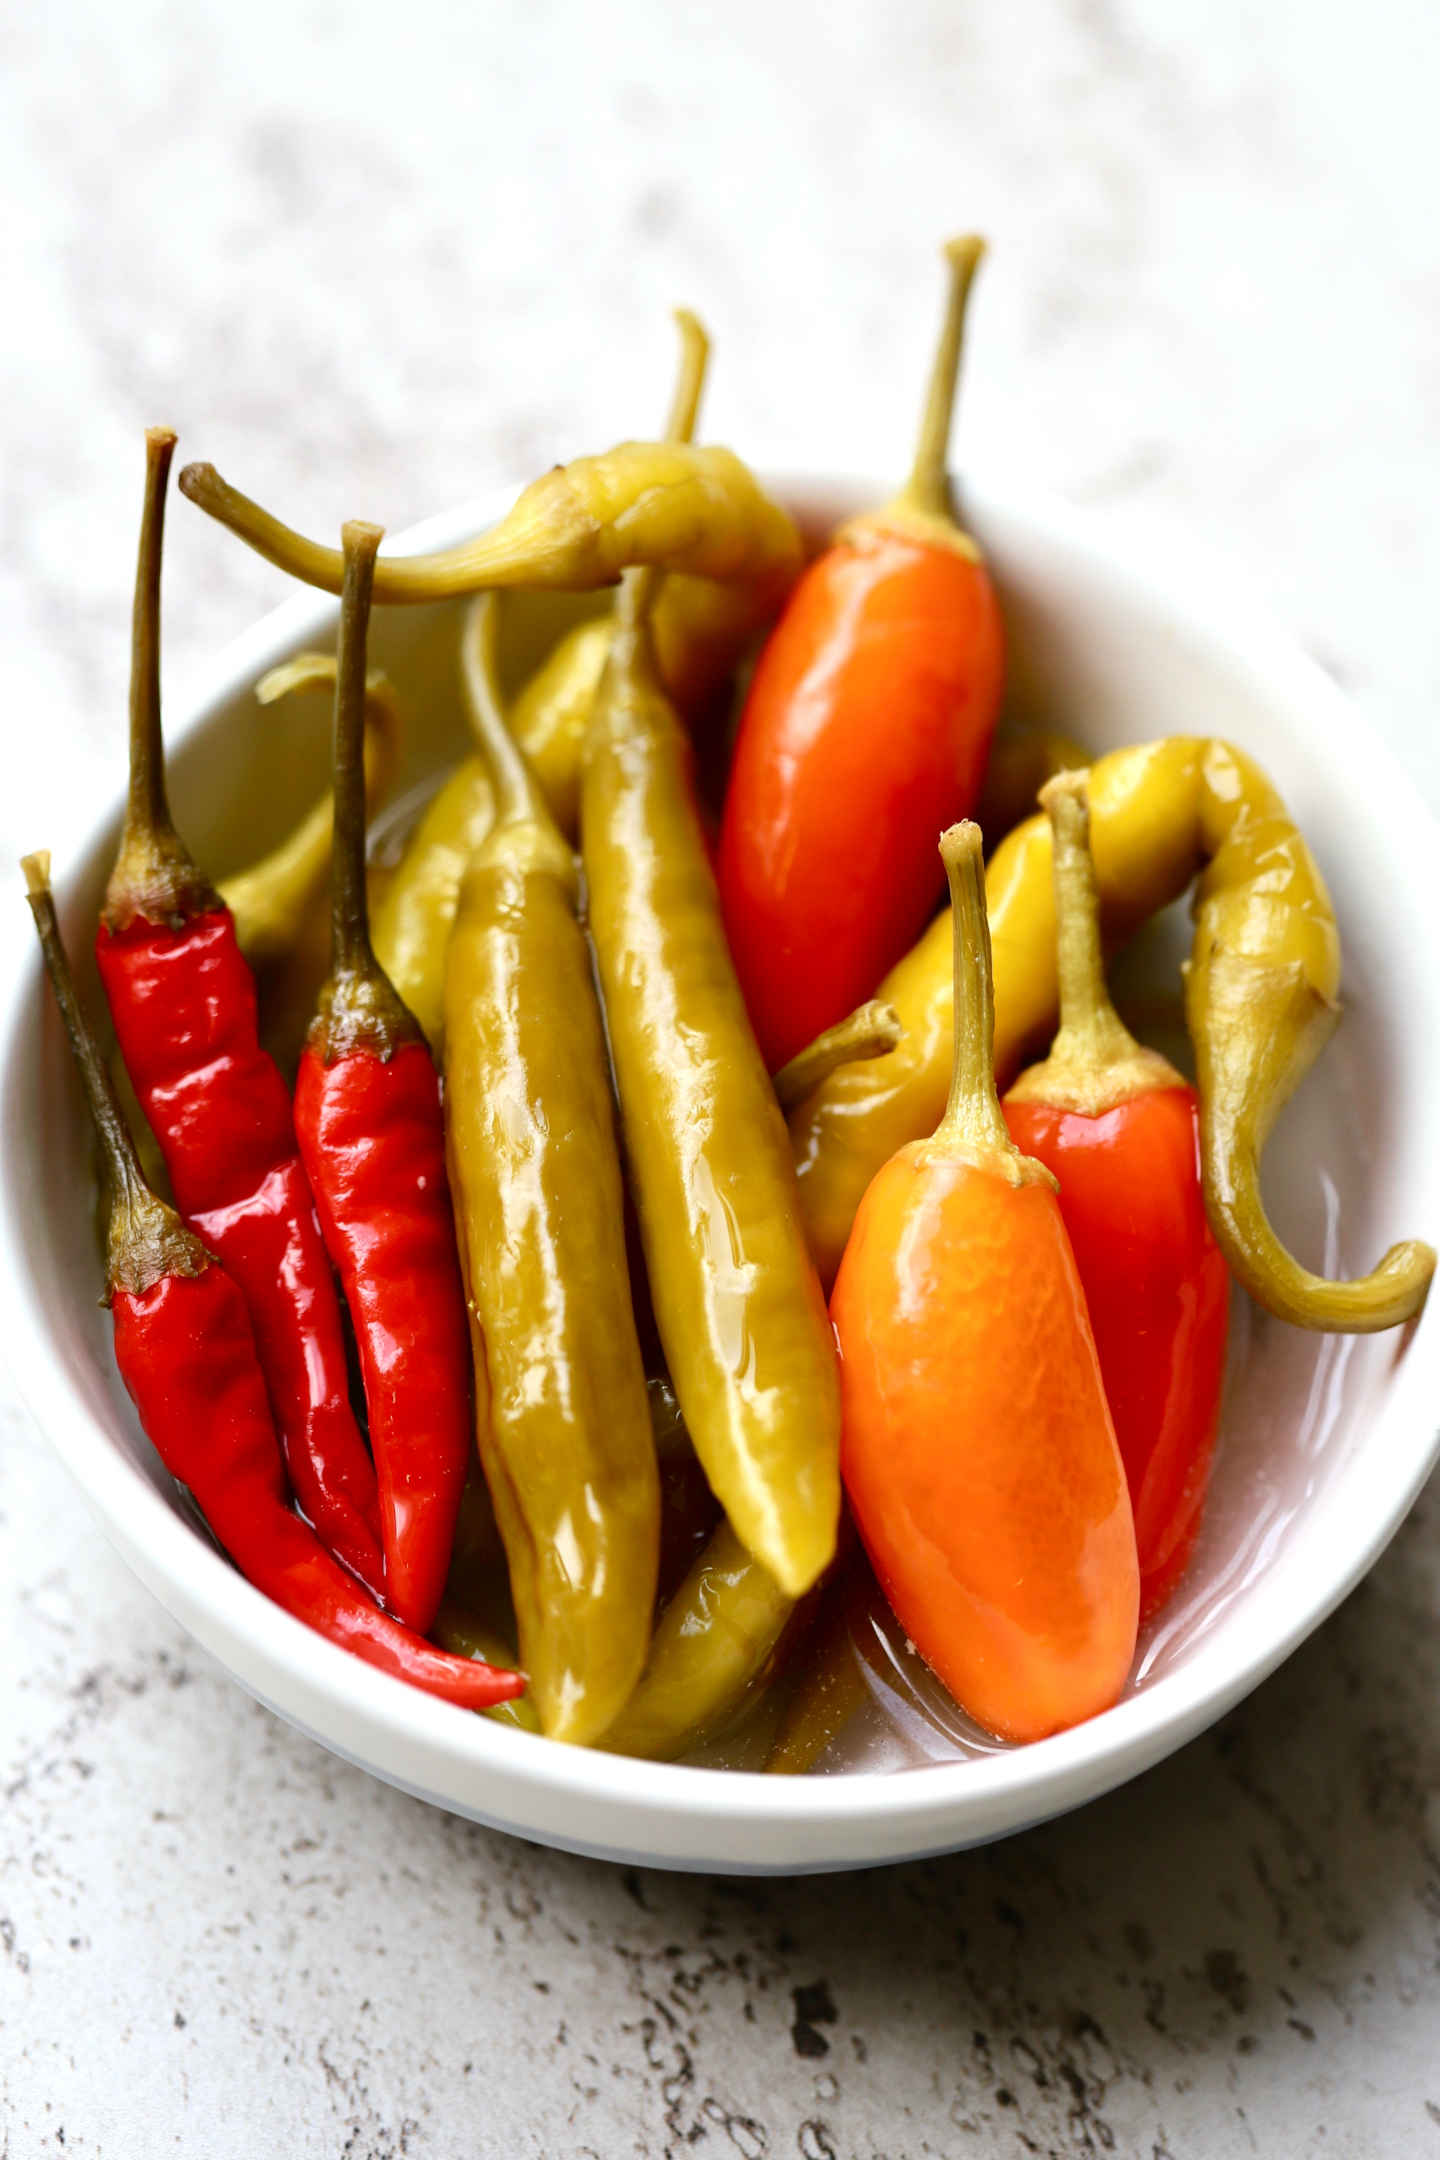 fermented tabasco peppers, bird's eye chilies, green cayenne peppers, and green Corno Di Capra peppers